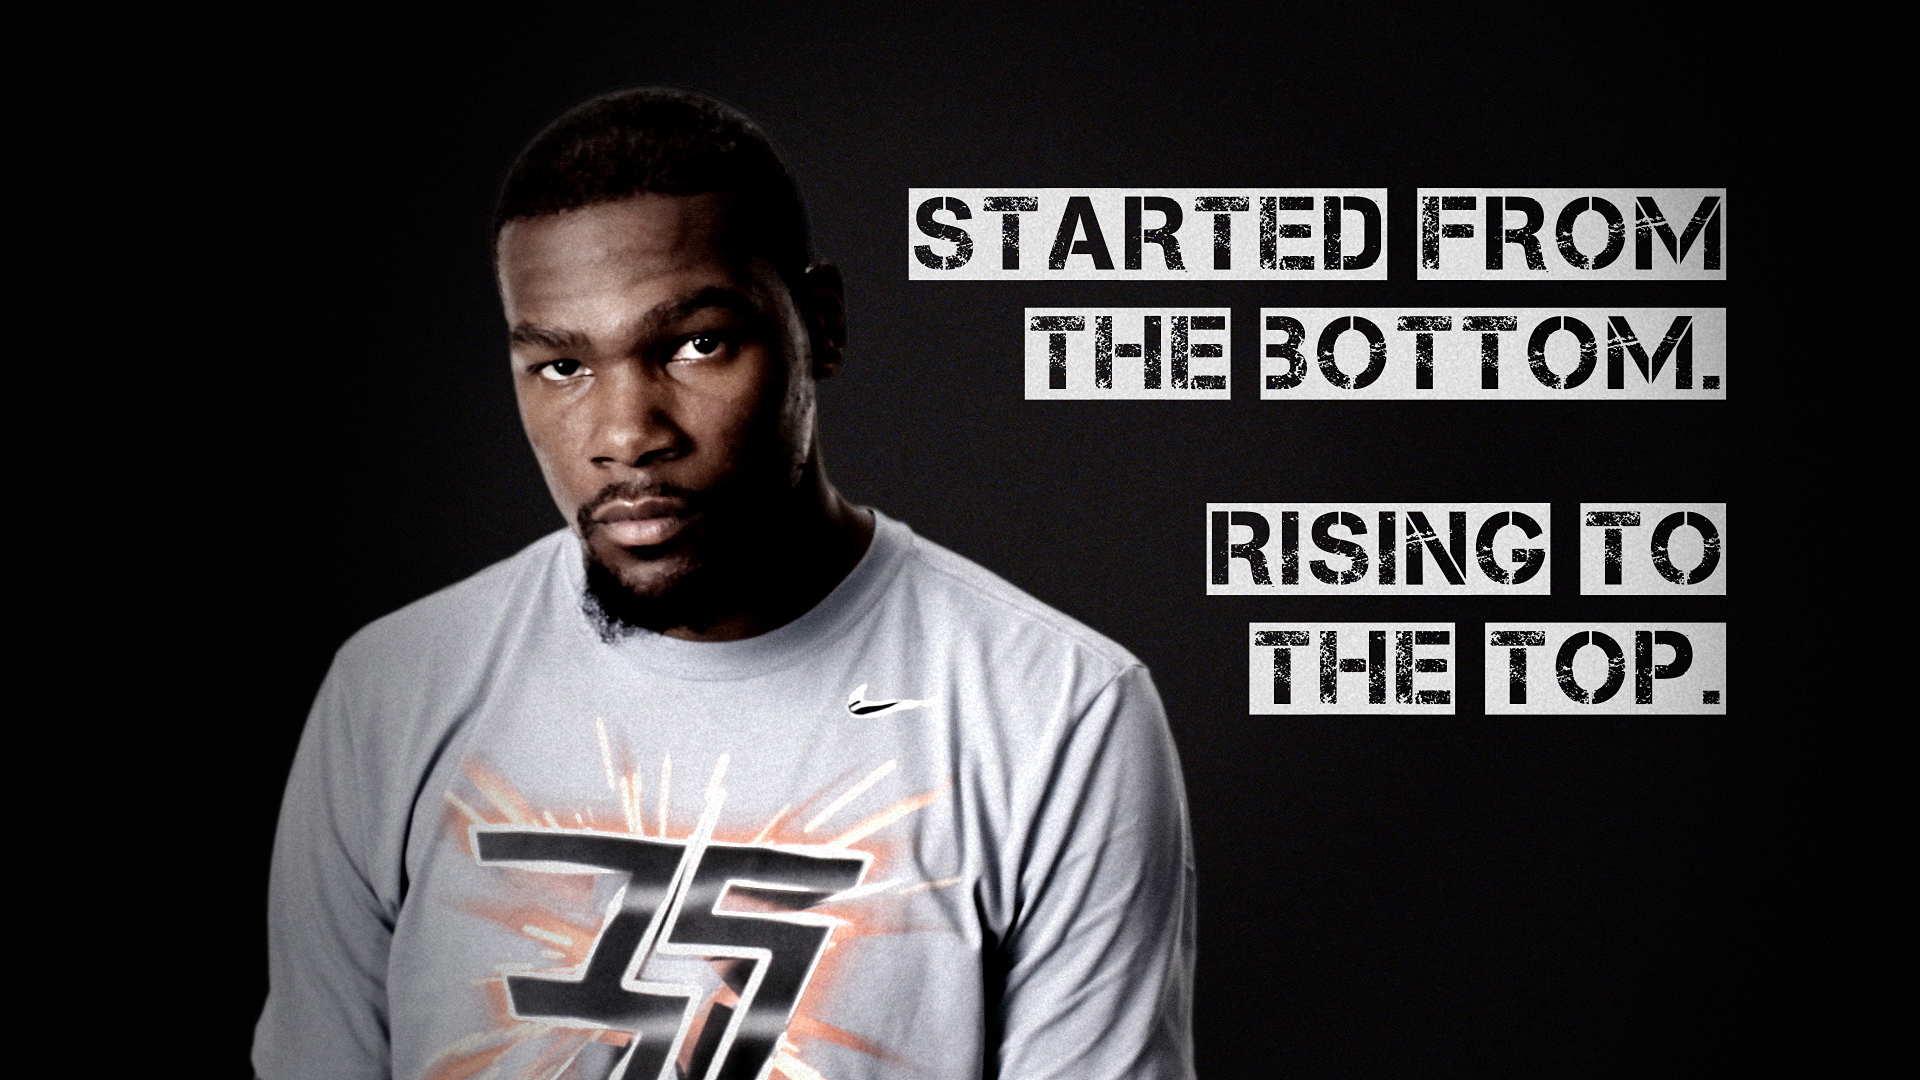 Kevin Durant Quote Kd7 Uprising Elevating To The Top  Nike News